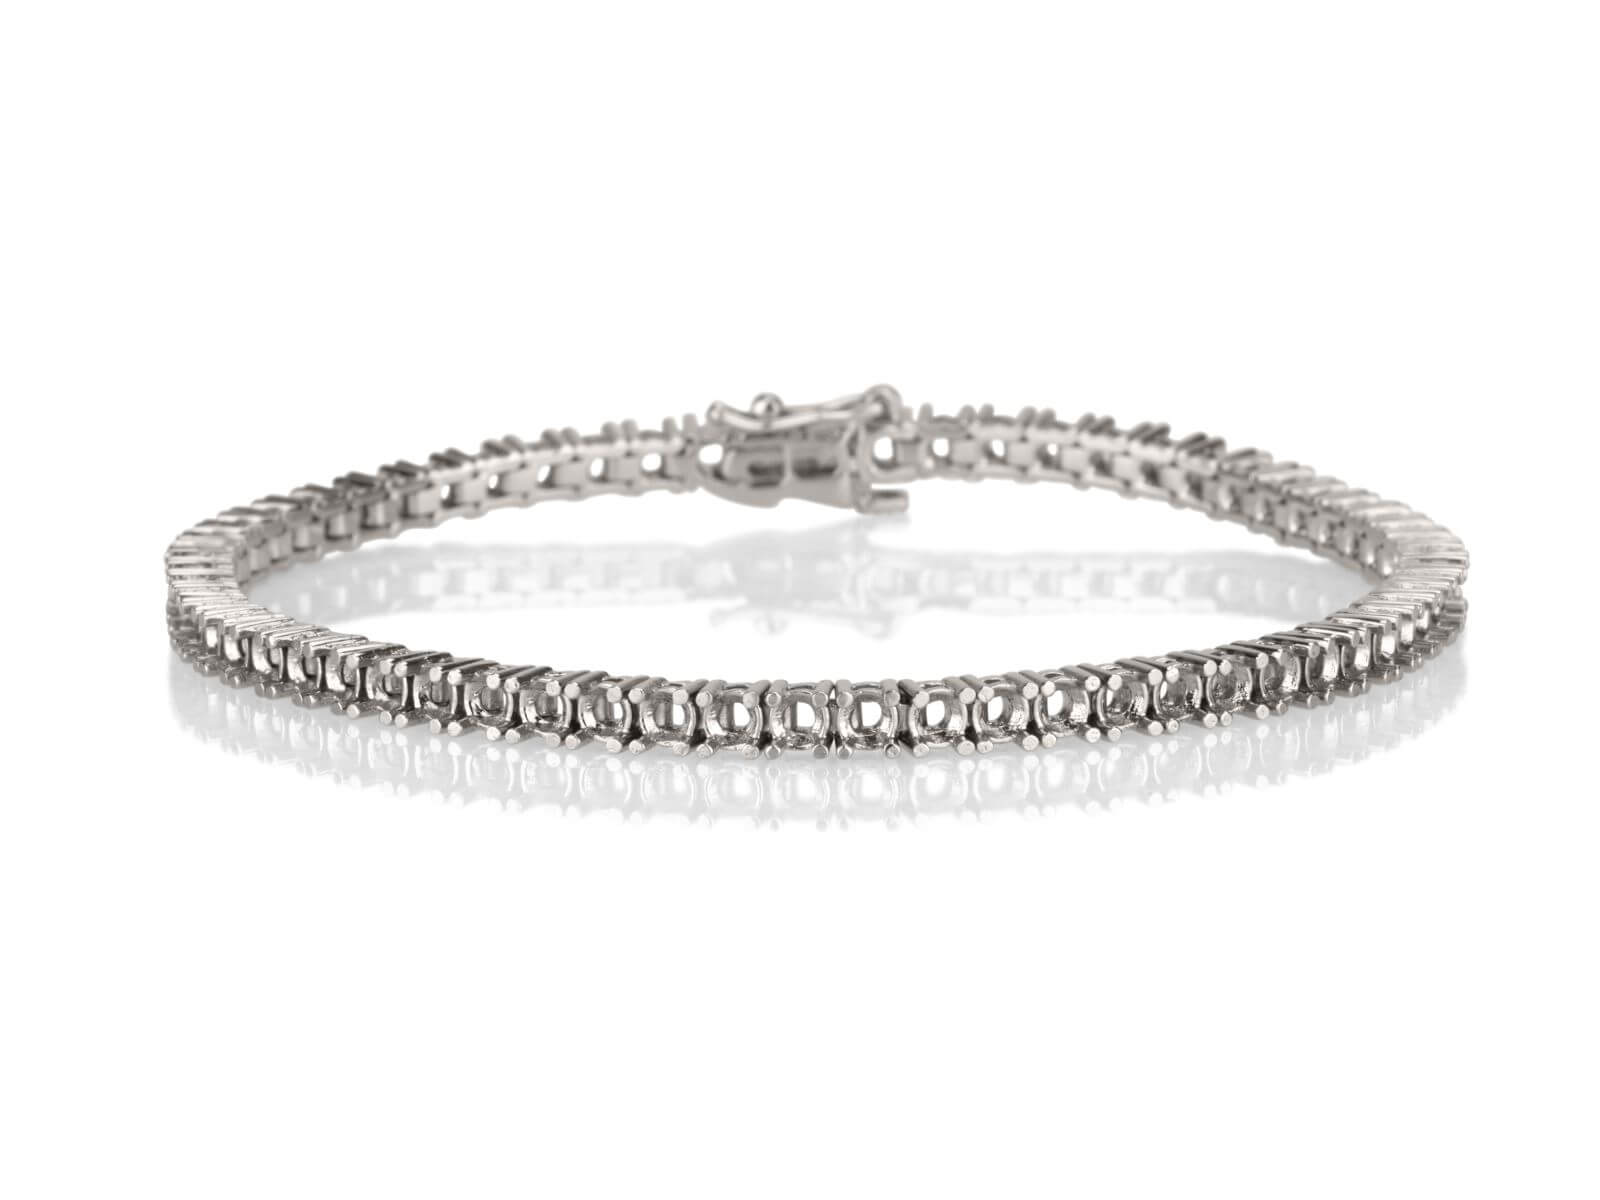 Tennis bracelet 4 prongs 2